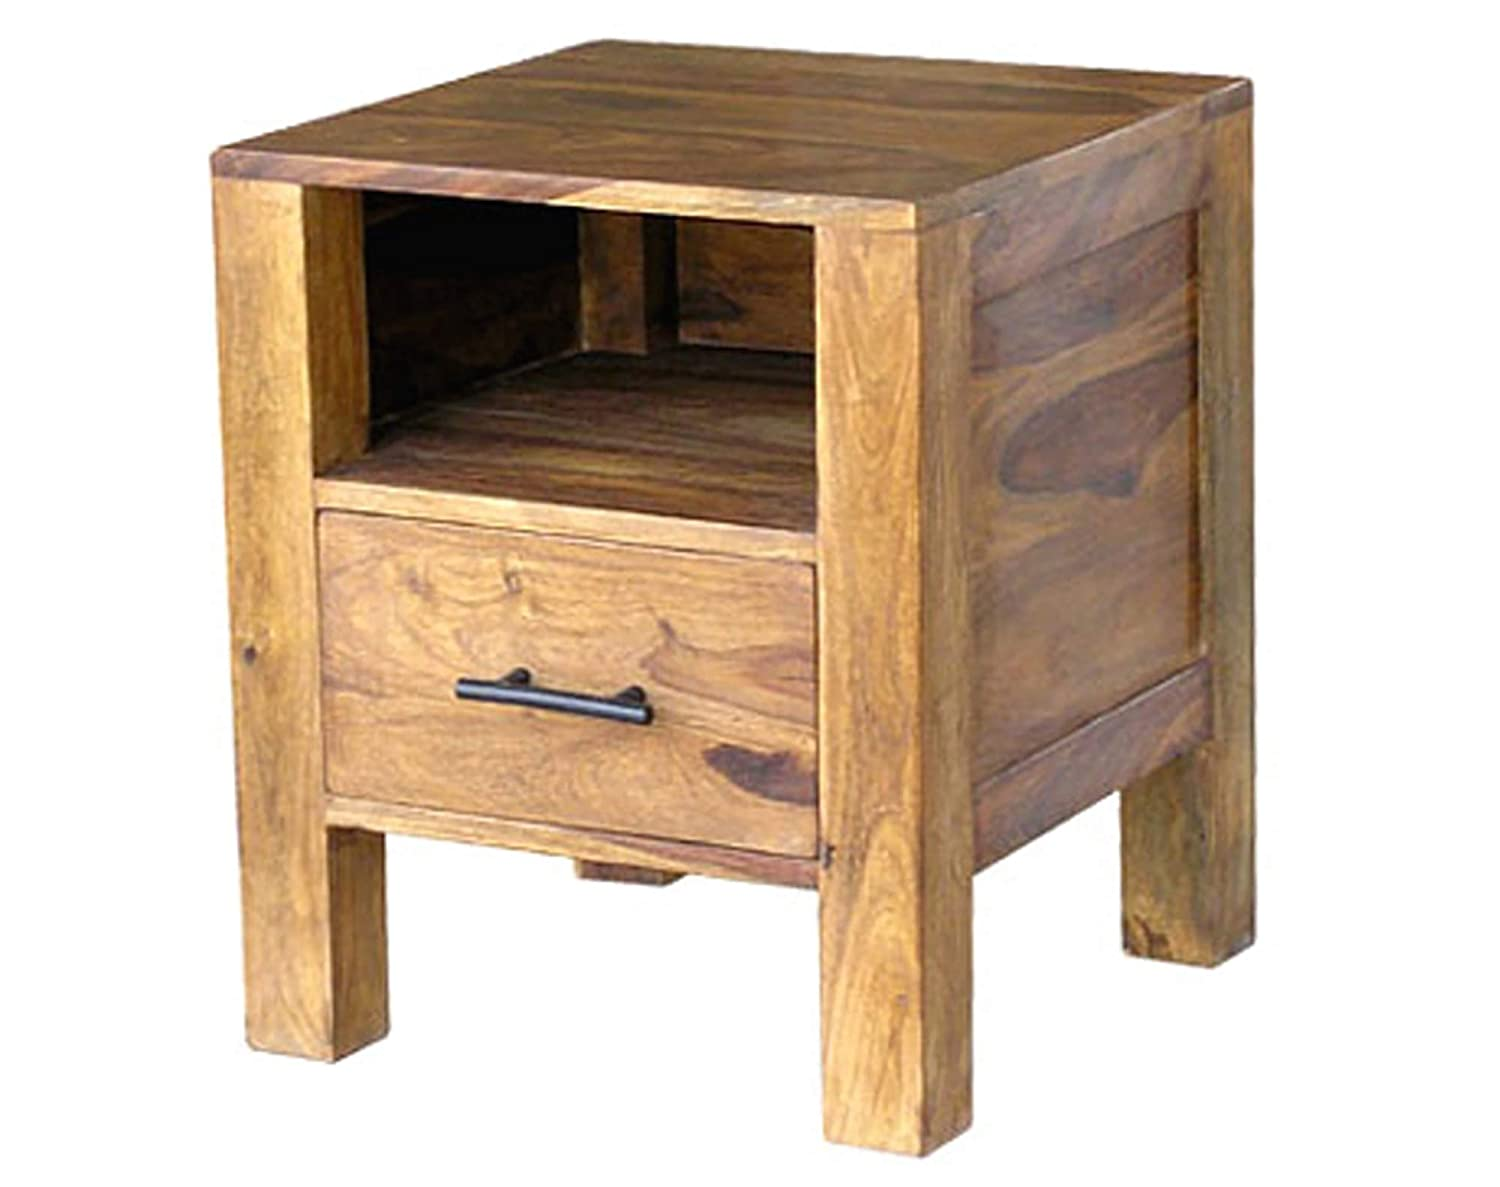 Kloob Furniture Bedside End Tables with 1 Drawer for Living Room (Honey Finish) Specially Designed Quality Certified Furniture For Home Living Room Bedroom Guest Room And Corporate Office Collection